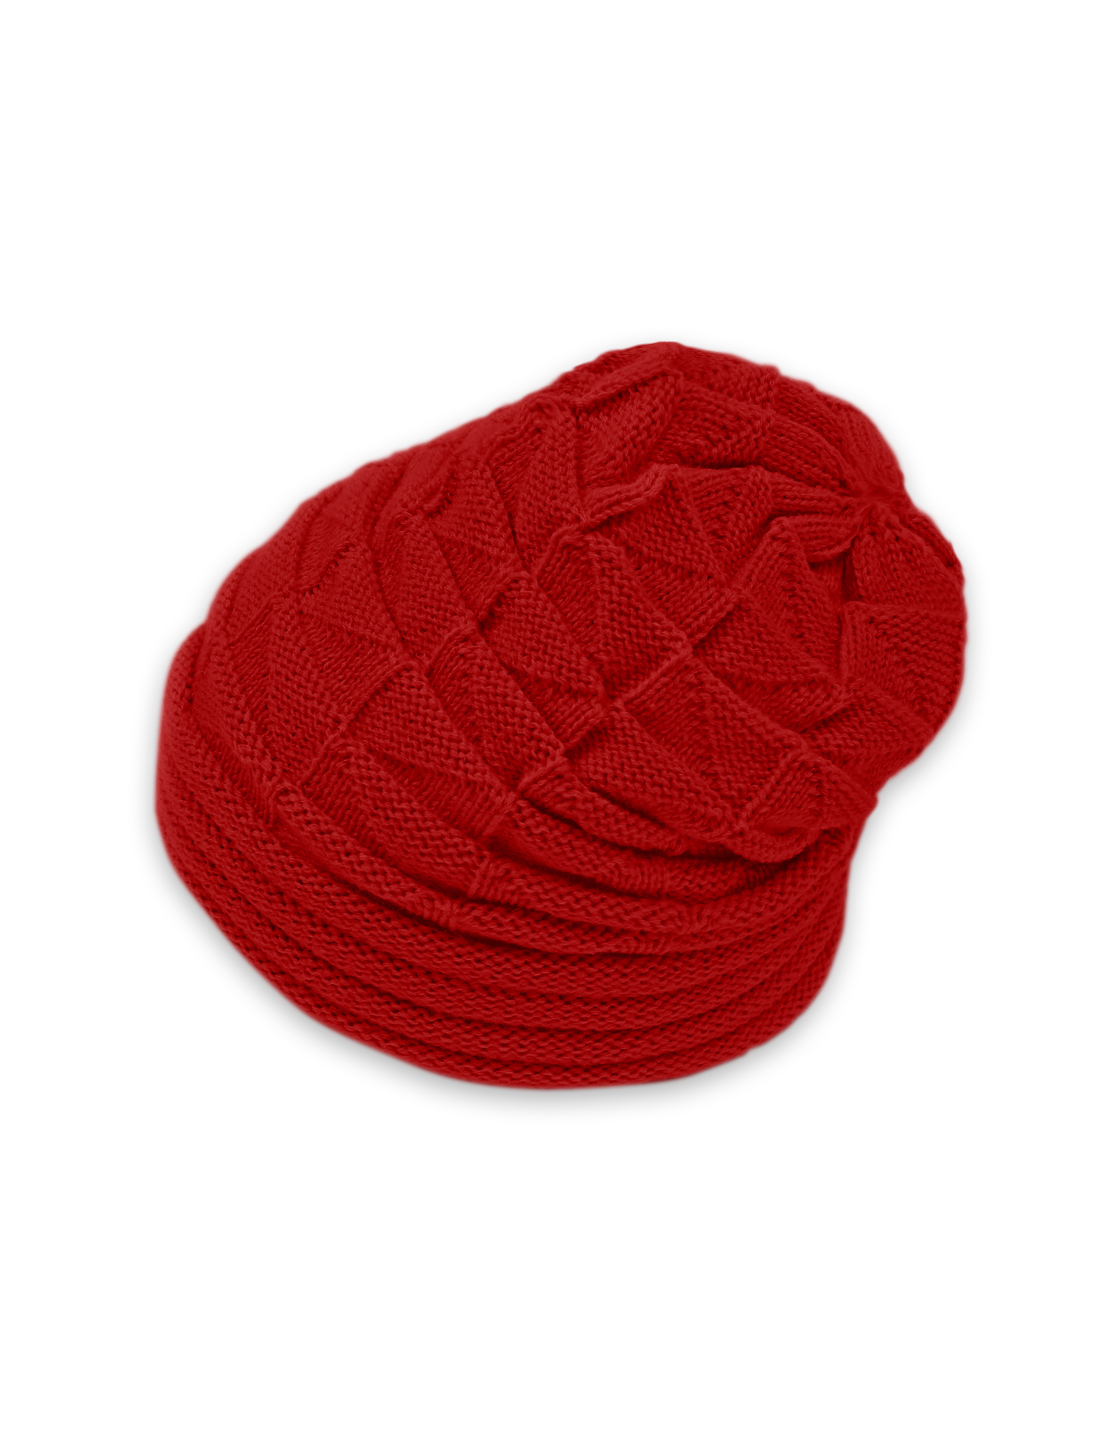 Unisex Roll Up Hem Triangle Pattern Stretchy Knit Beanie Hat Red